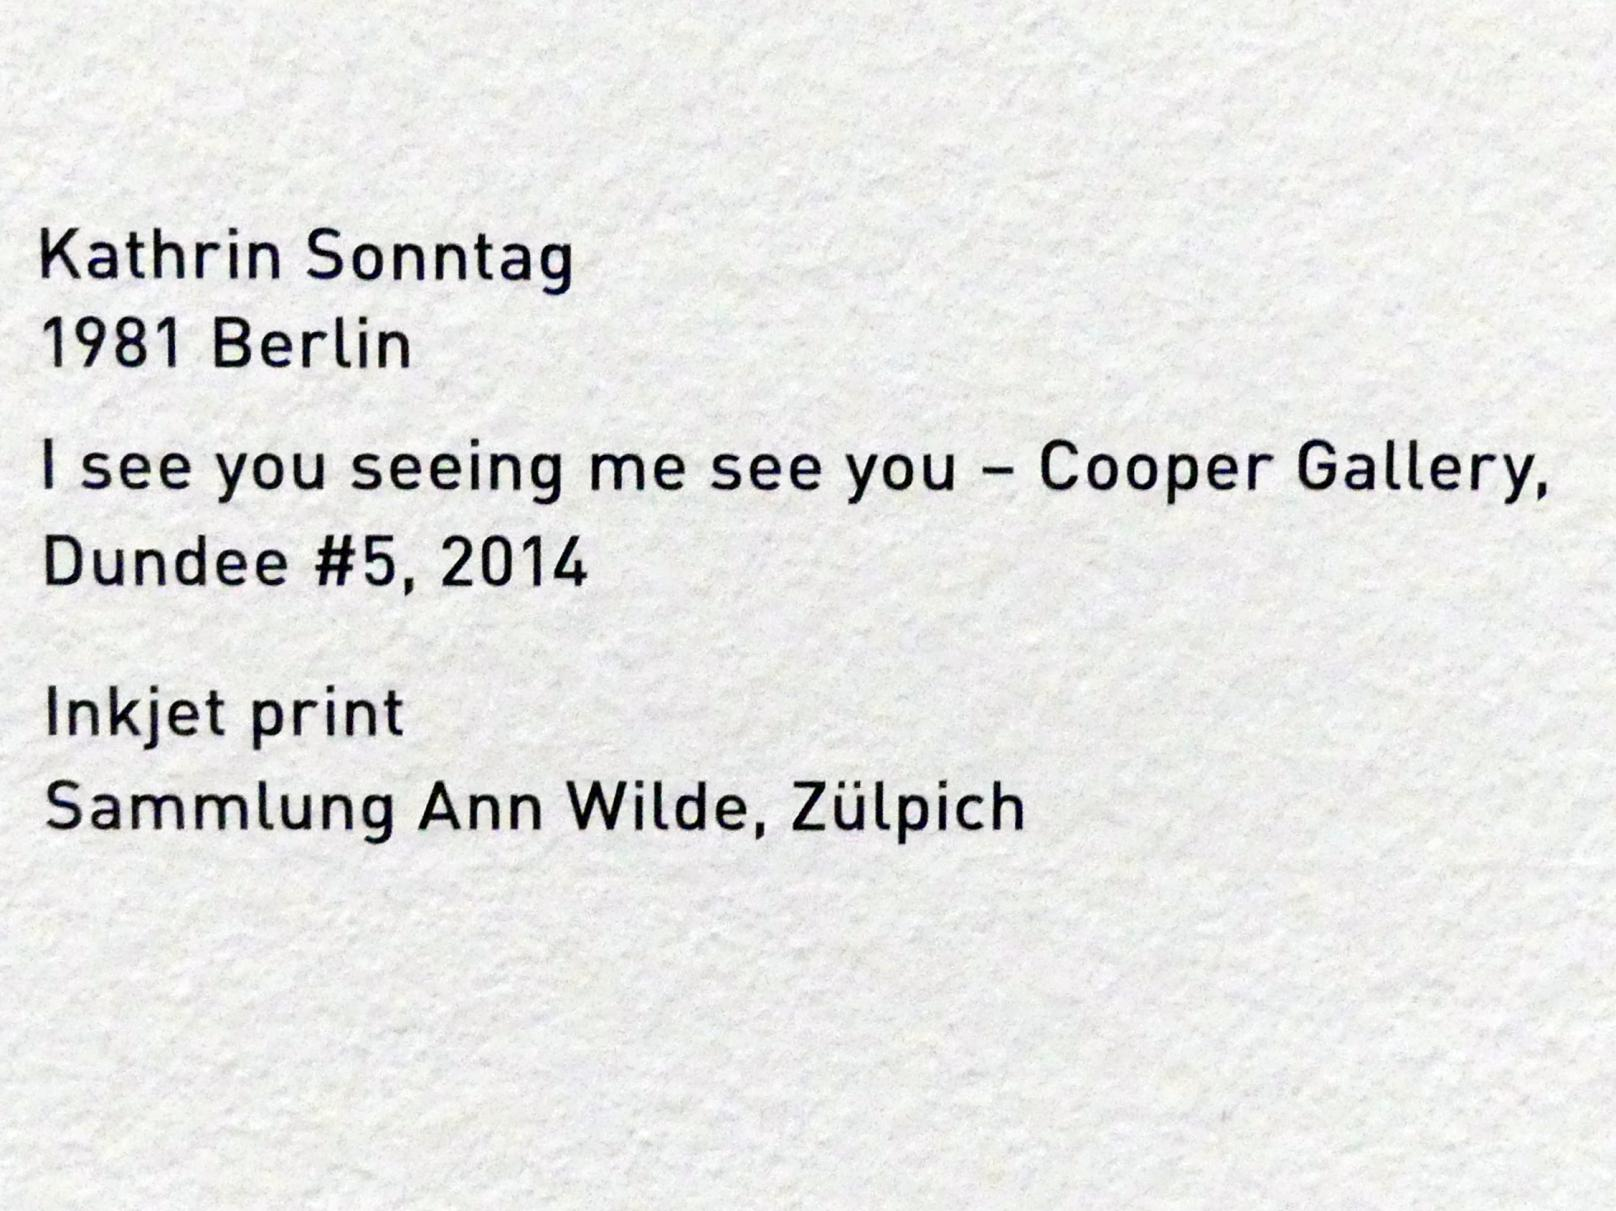 Kathrin Sonntag: I see you seeing me see you - Cooper Gallery Dundee #5, 2014